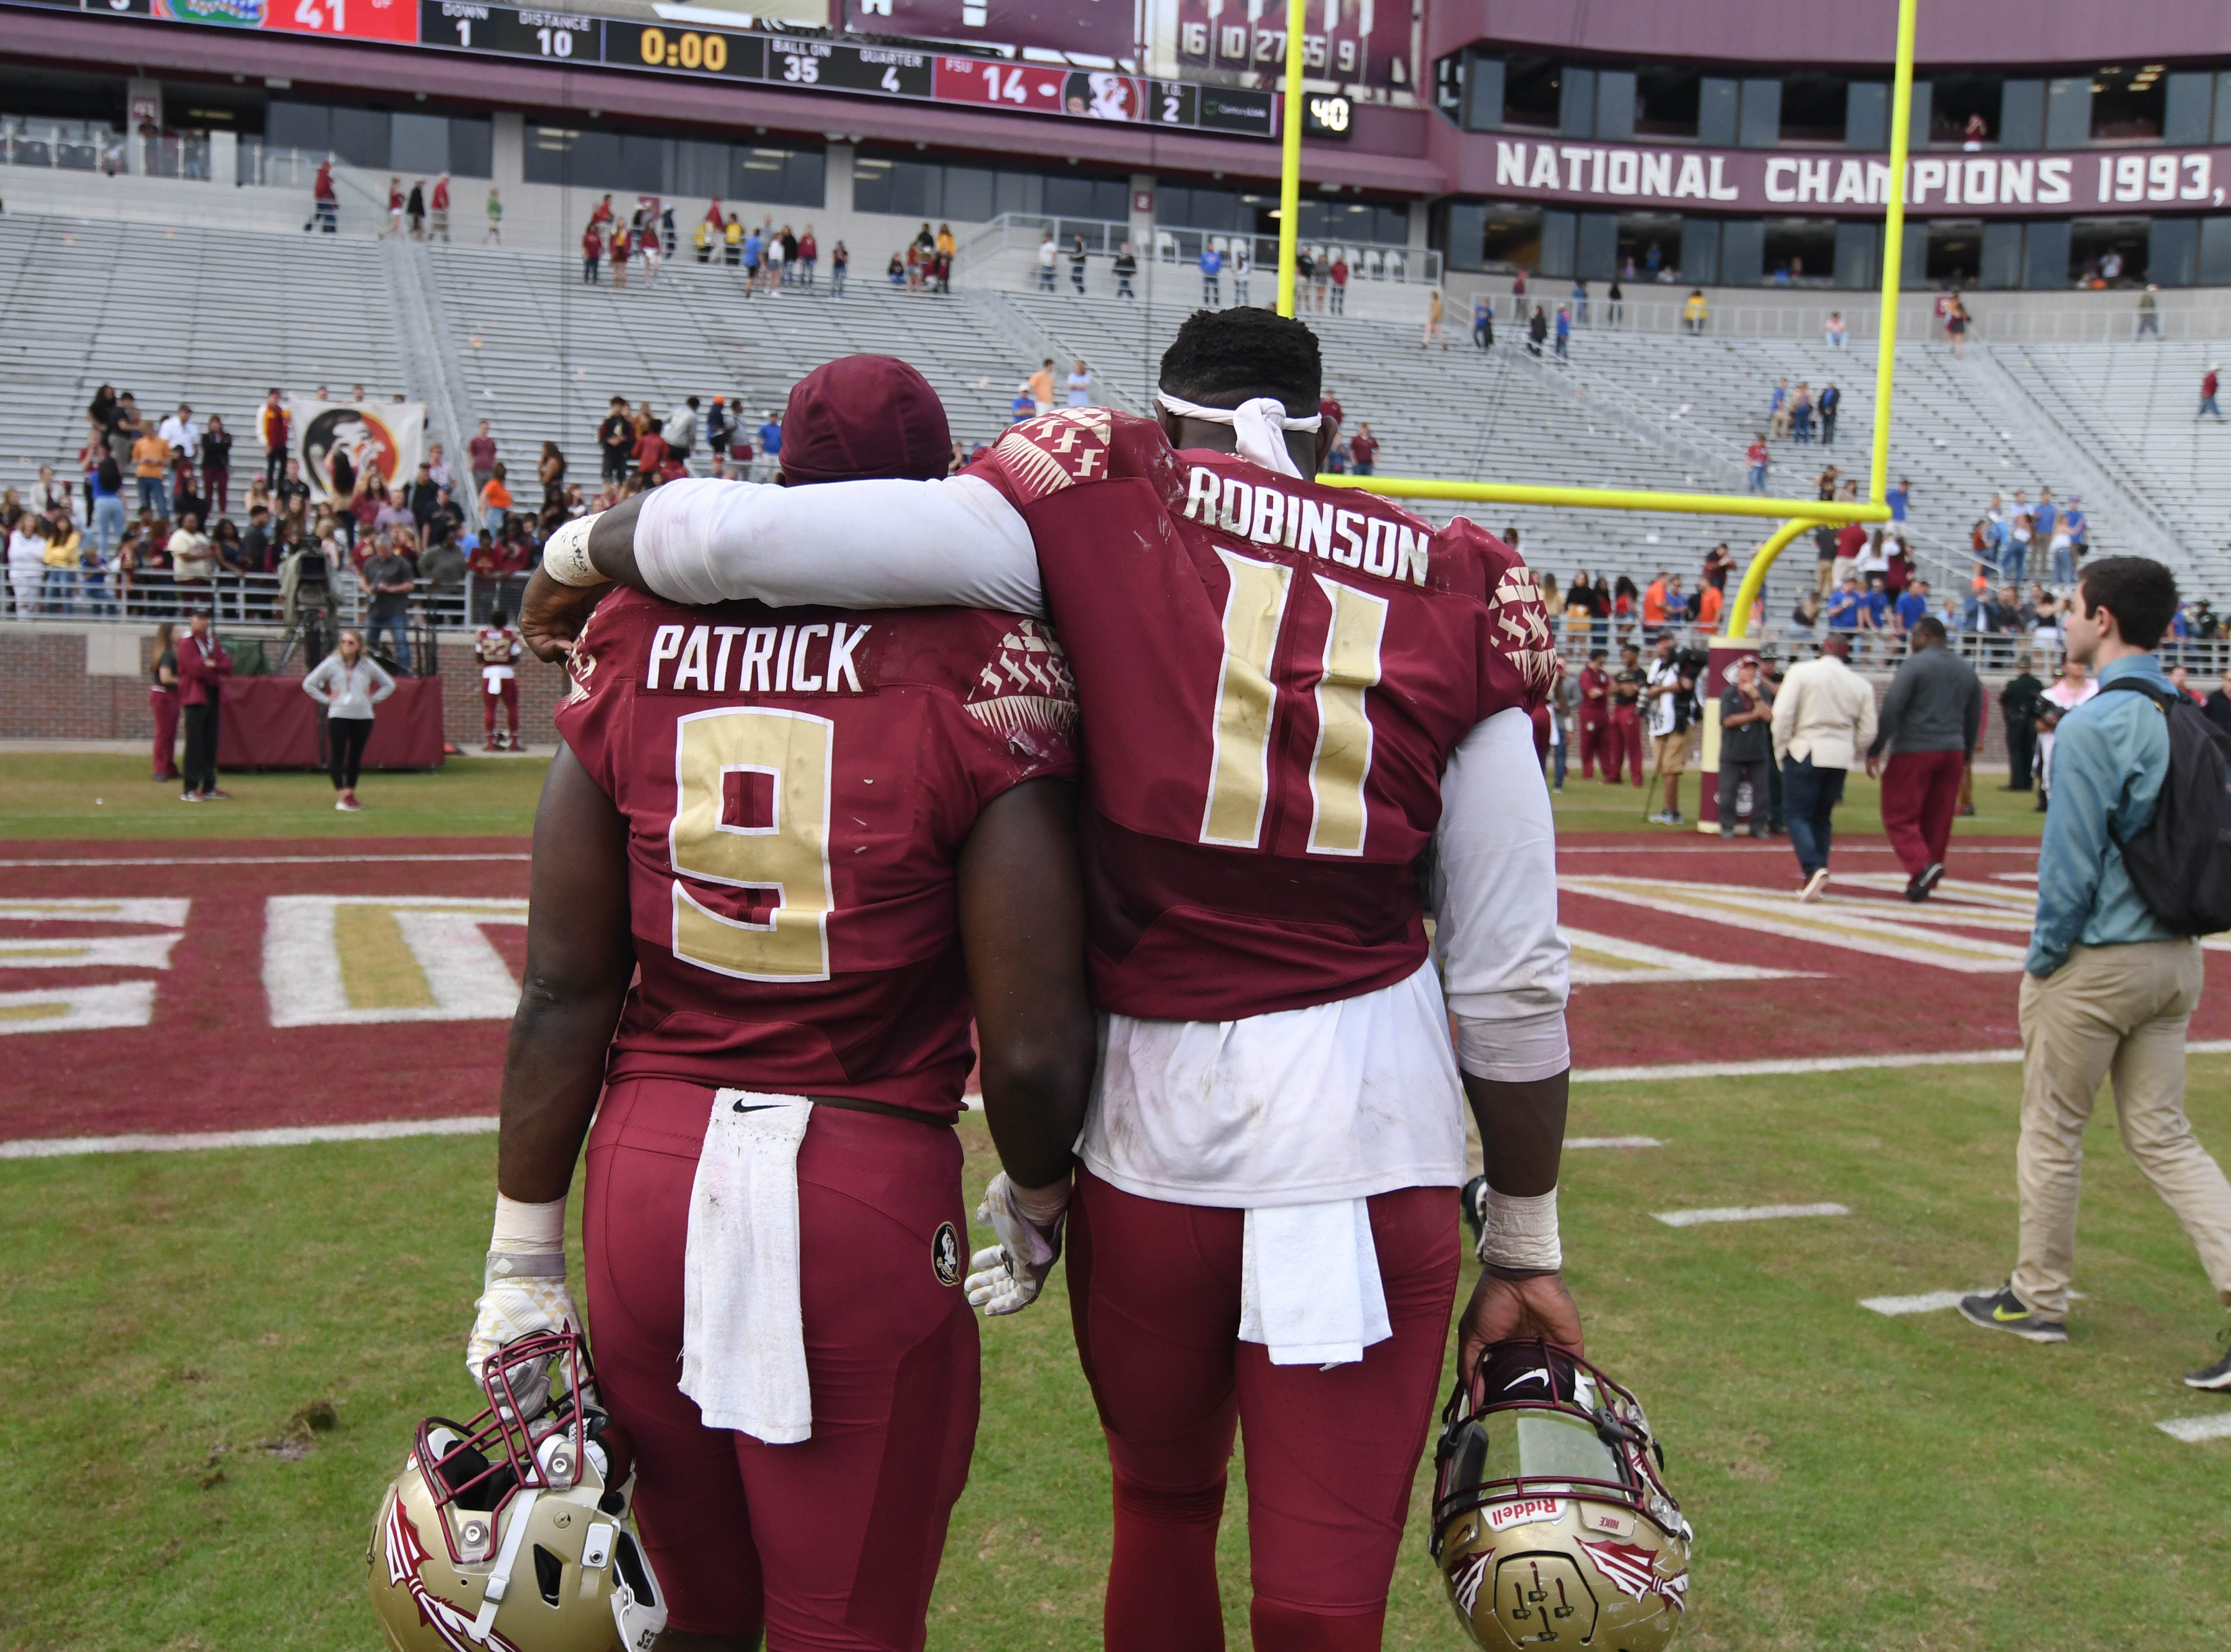 FSU senior running back Jacques Patrick (9) and FSU redshirt sophomore defensive end Janarius Robinson (11) walking off the field after the FSU game against UF at Doak Campbell Stadium on Novemeber 24, 2018.